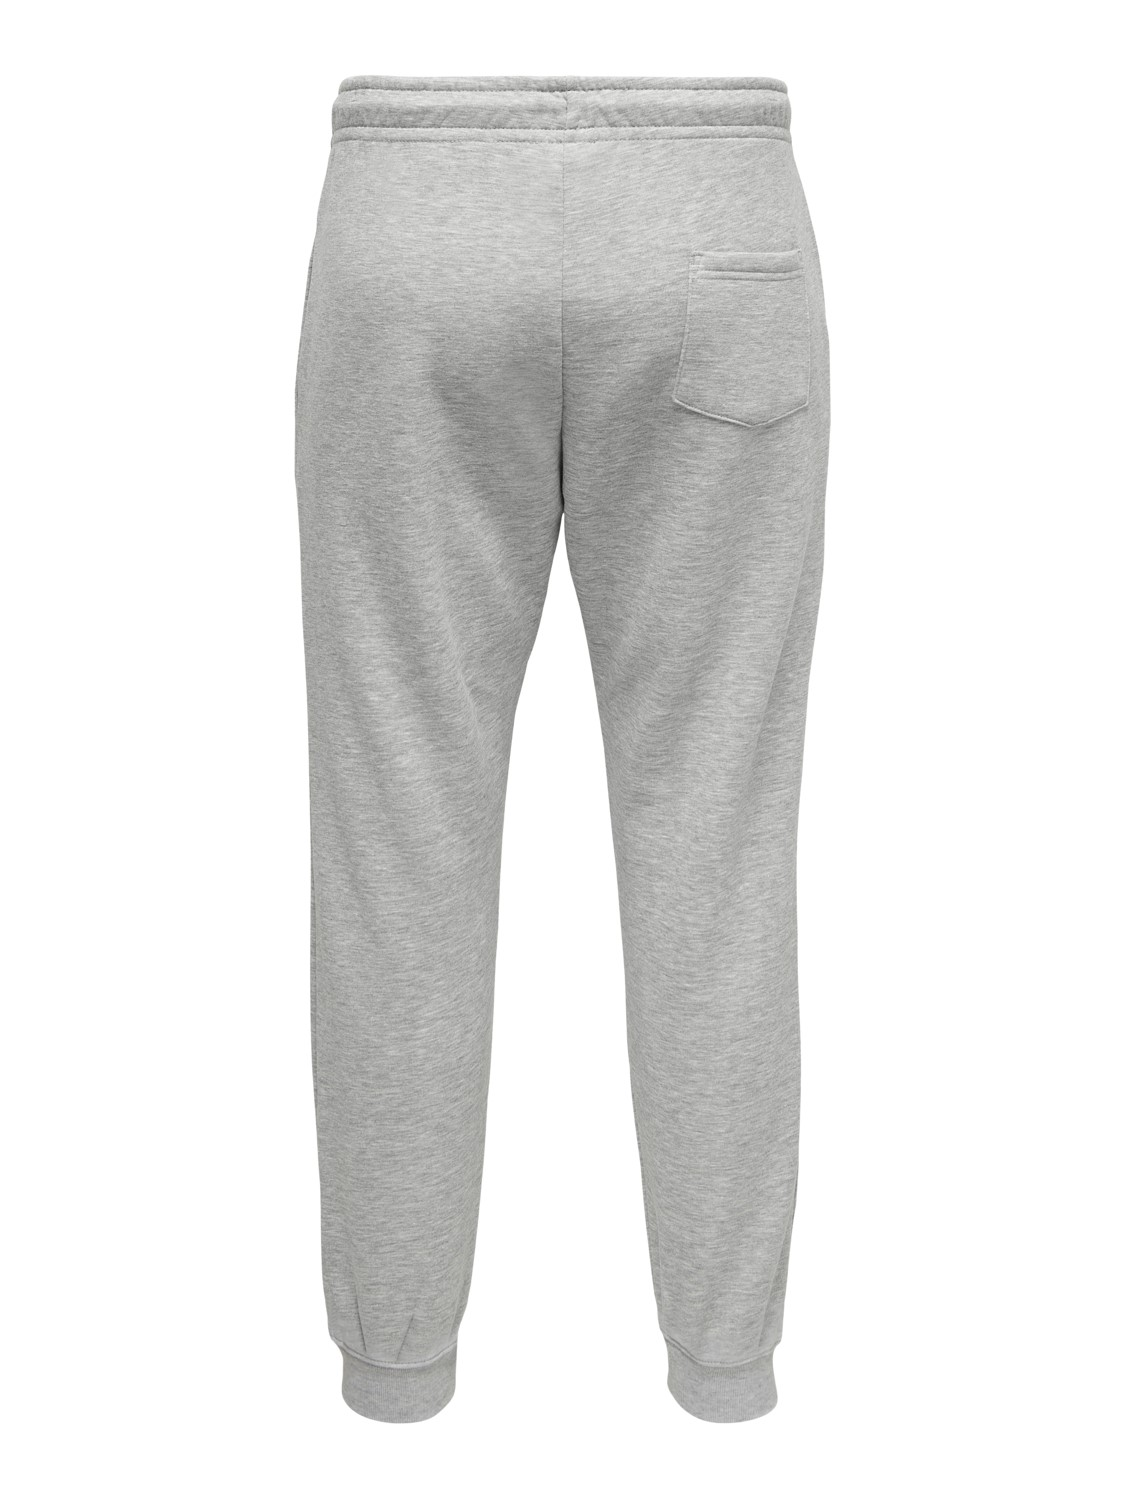 ONLY & SONS - ONSCERES SWEAT PANTS GREY   GATE 36 Hobro